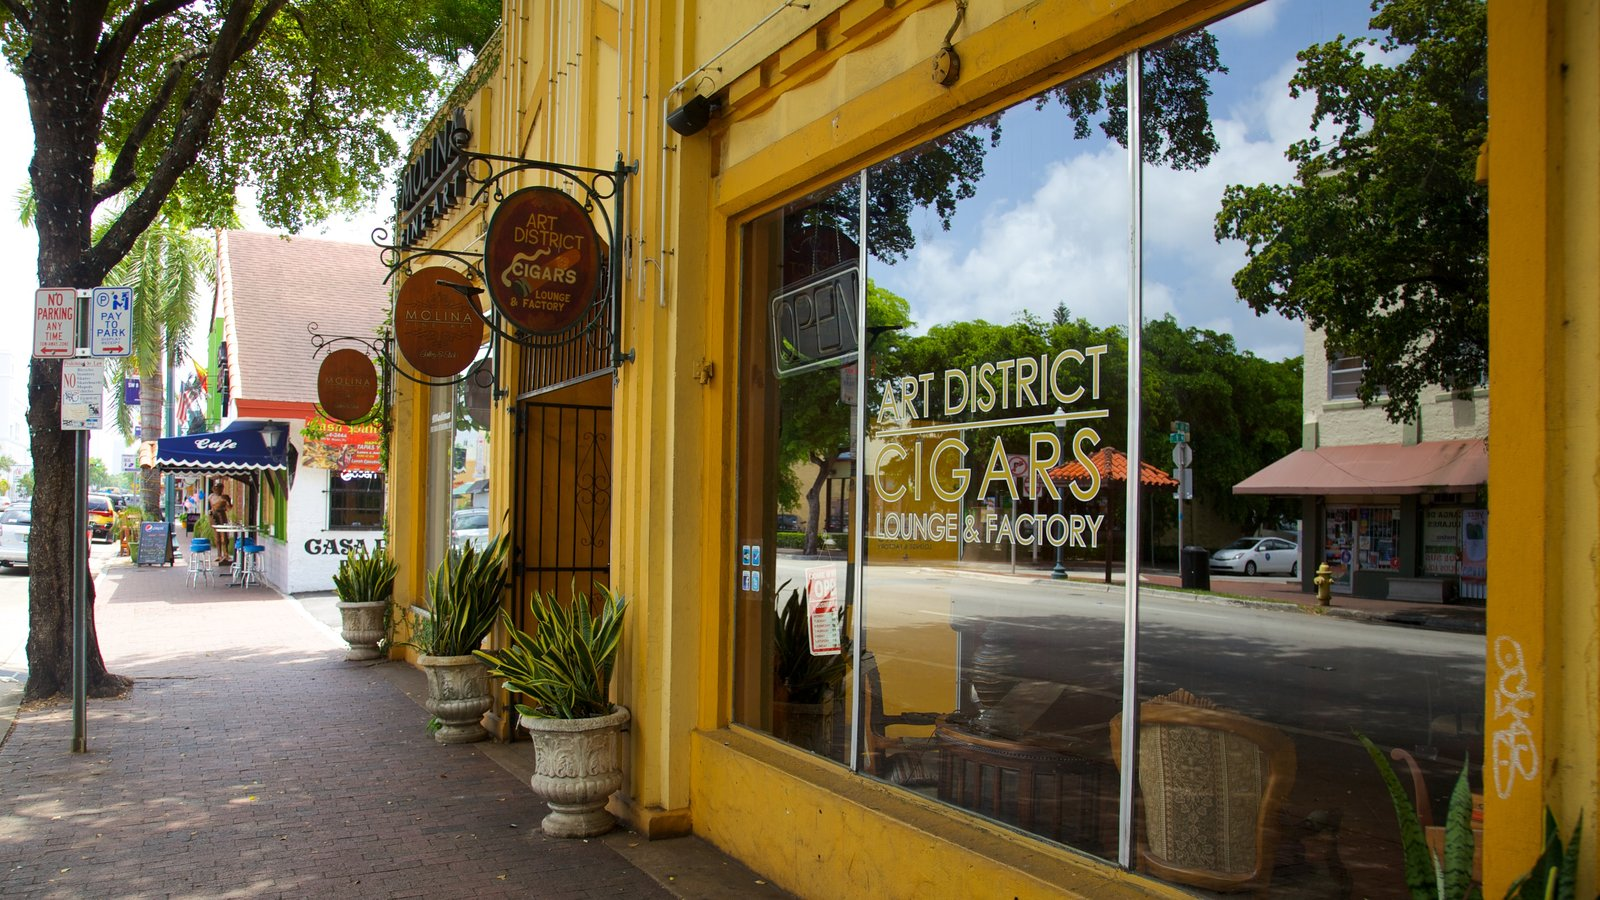 Little Havana which includes street scenes, a city and shopping